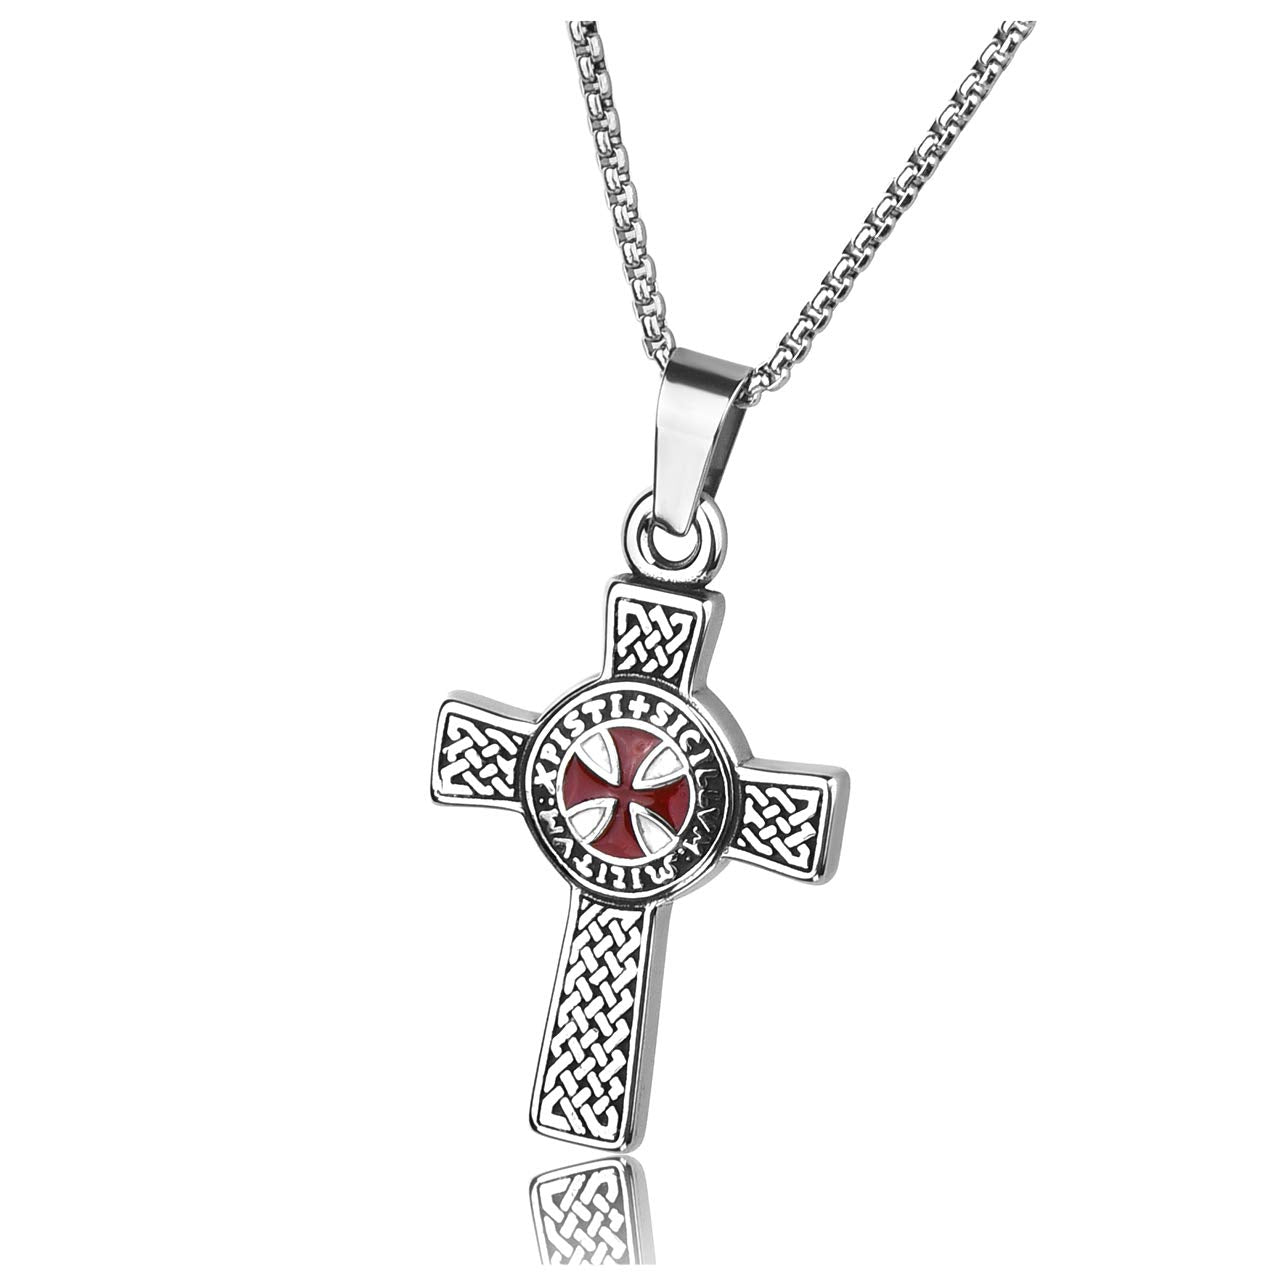 Knight's Templar Cross Necklace - SolomonsOrder